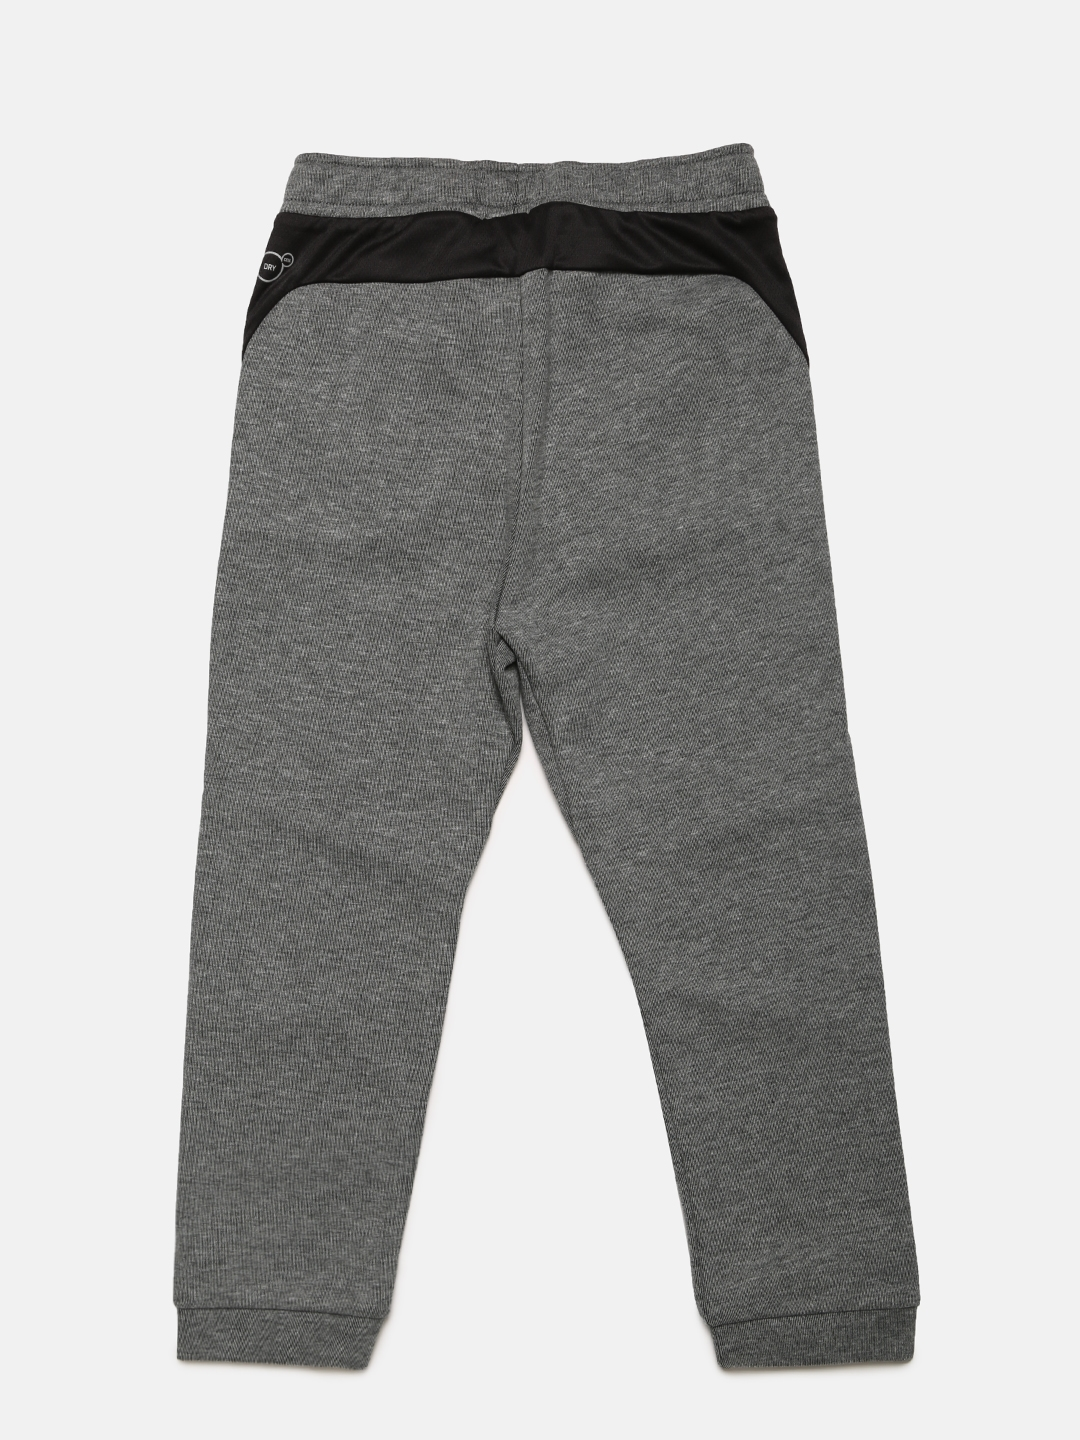 733e1e3ed053 Buy Puma Boys Grey Tech Fleece Track Pants - Track Pants for Boys ...